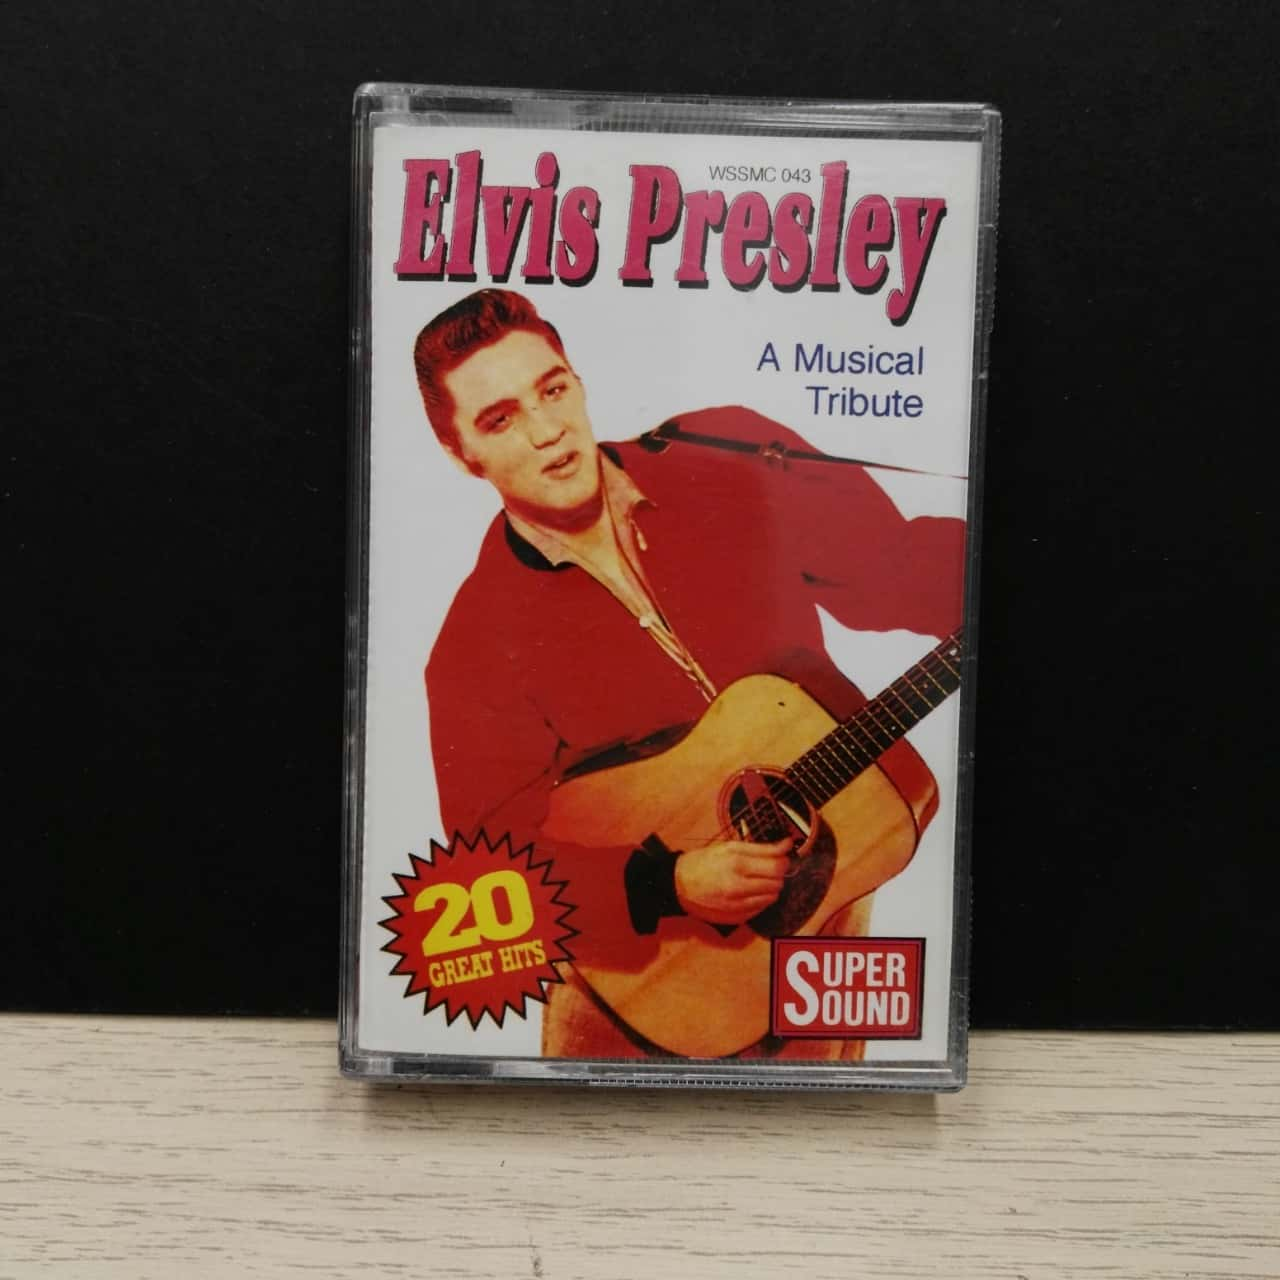 Music Cassette - Elvis Presley & Friends - A Musical Tribute - 20 Greatest Hits